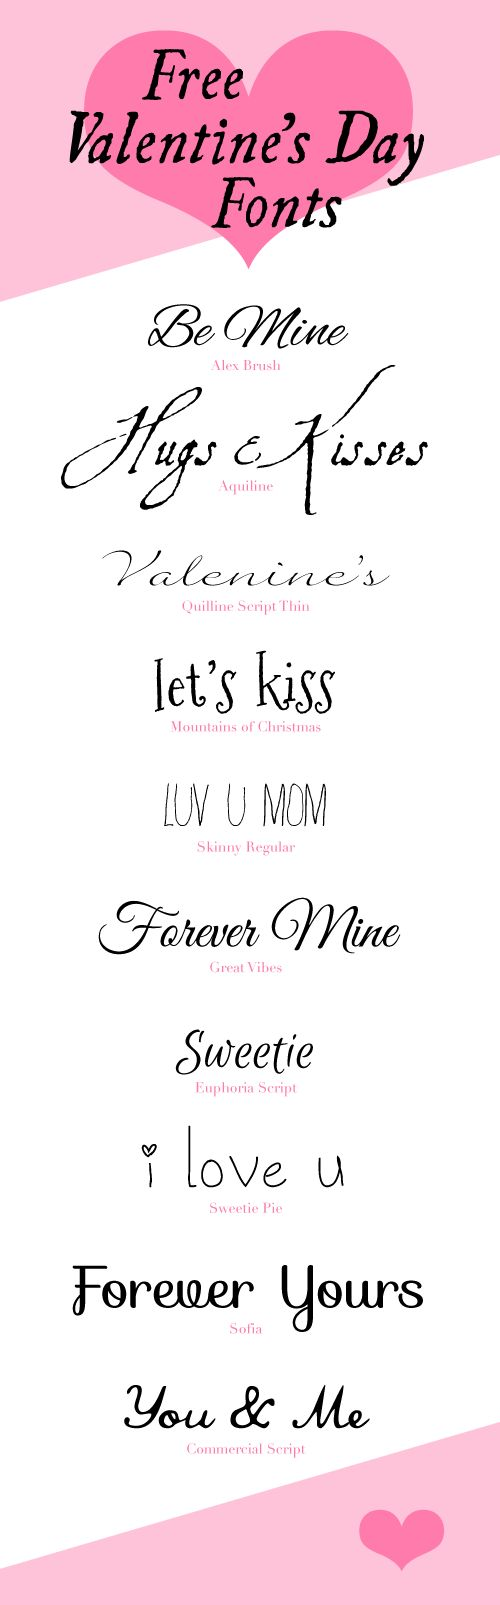 Valentine Day Fonts